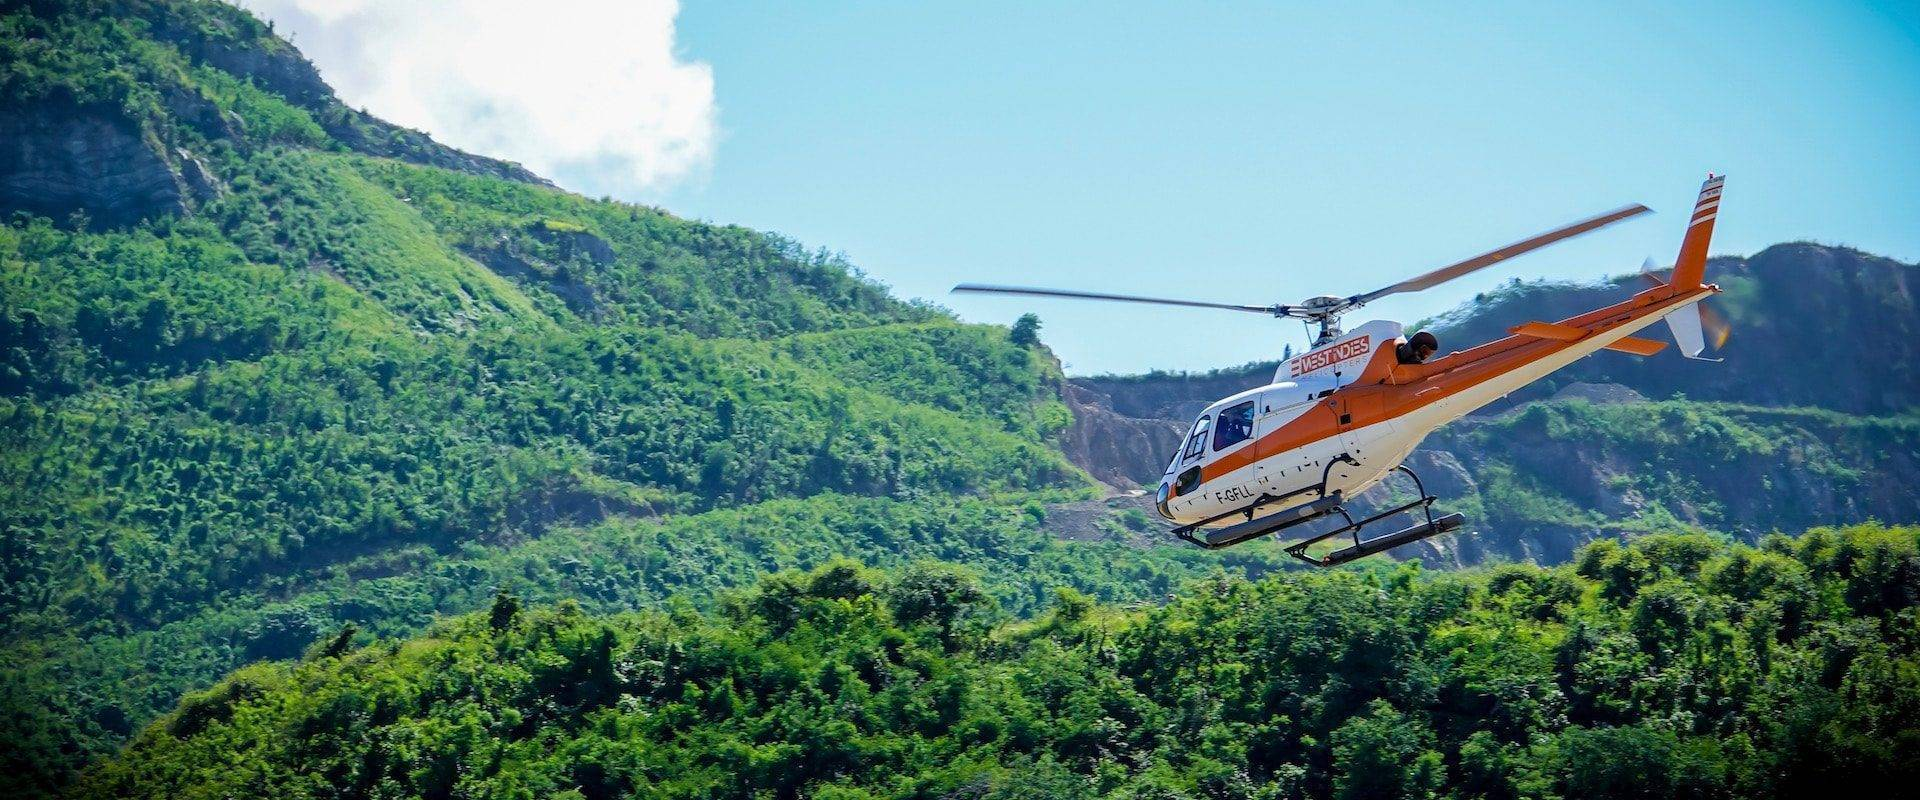 8-West-Indies-Helicoptere-St-Barth